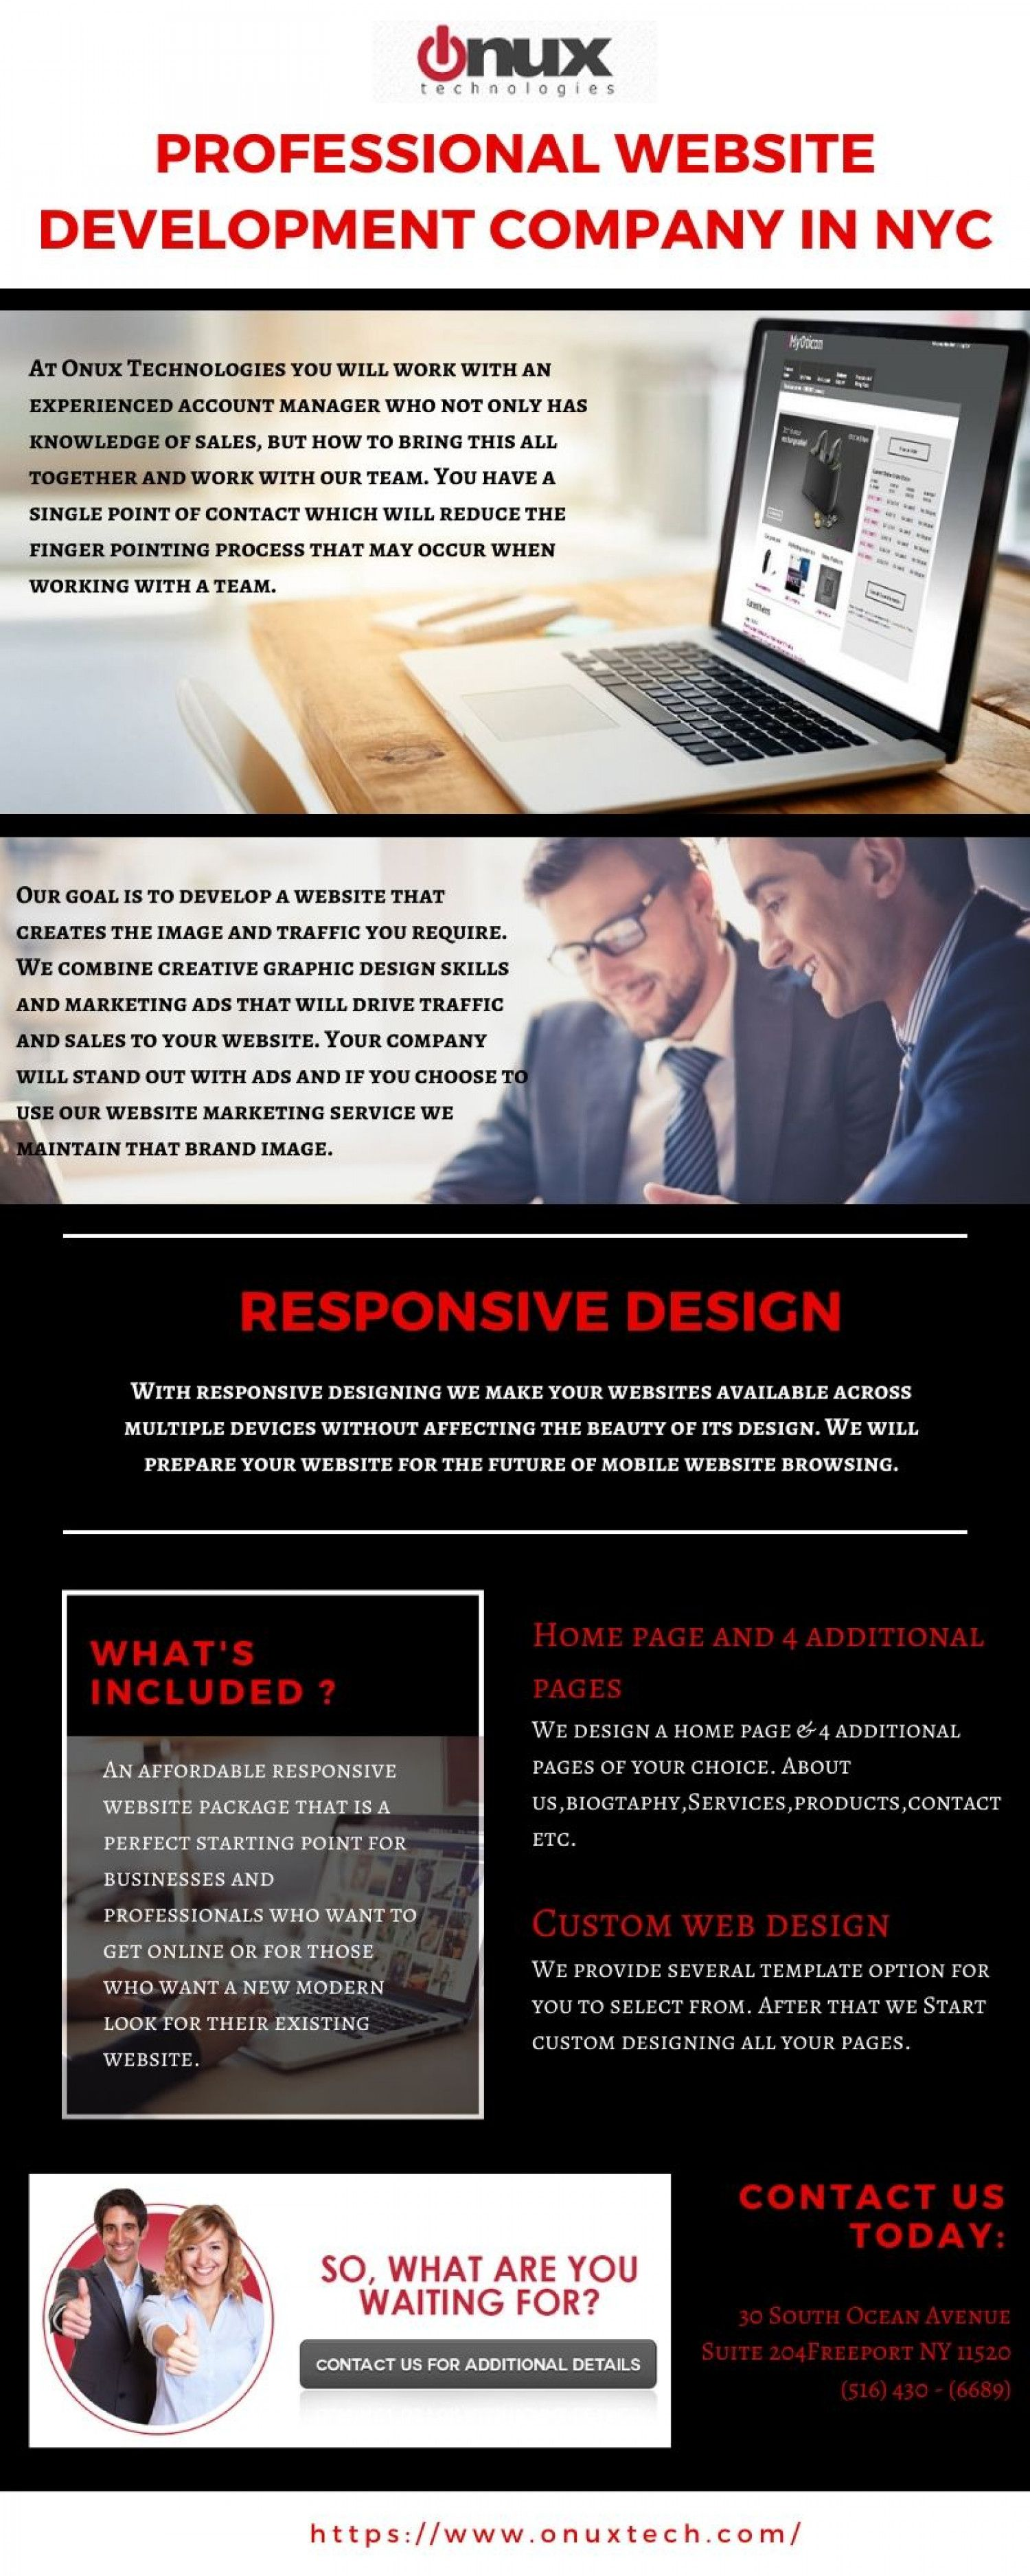 Pin By Onux Technologies On Small Business It Support Services Near Me In 2020 Website Development Company Small Business It Support Website Development